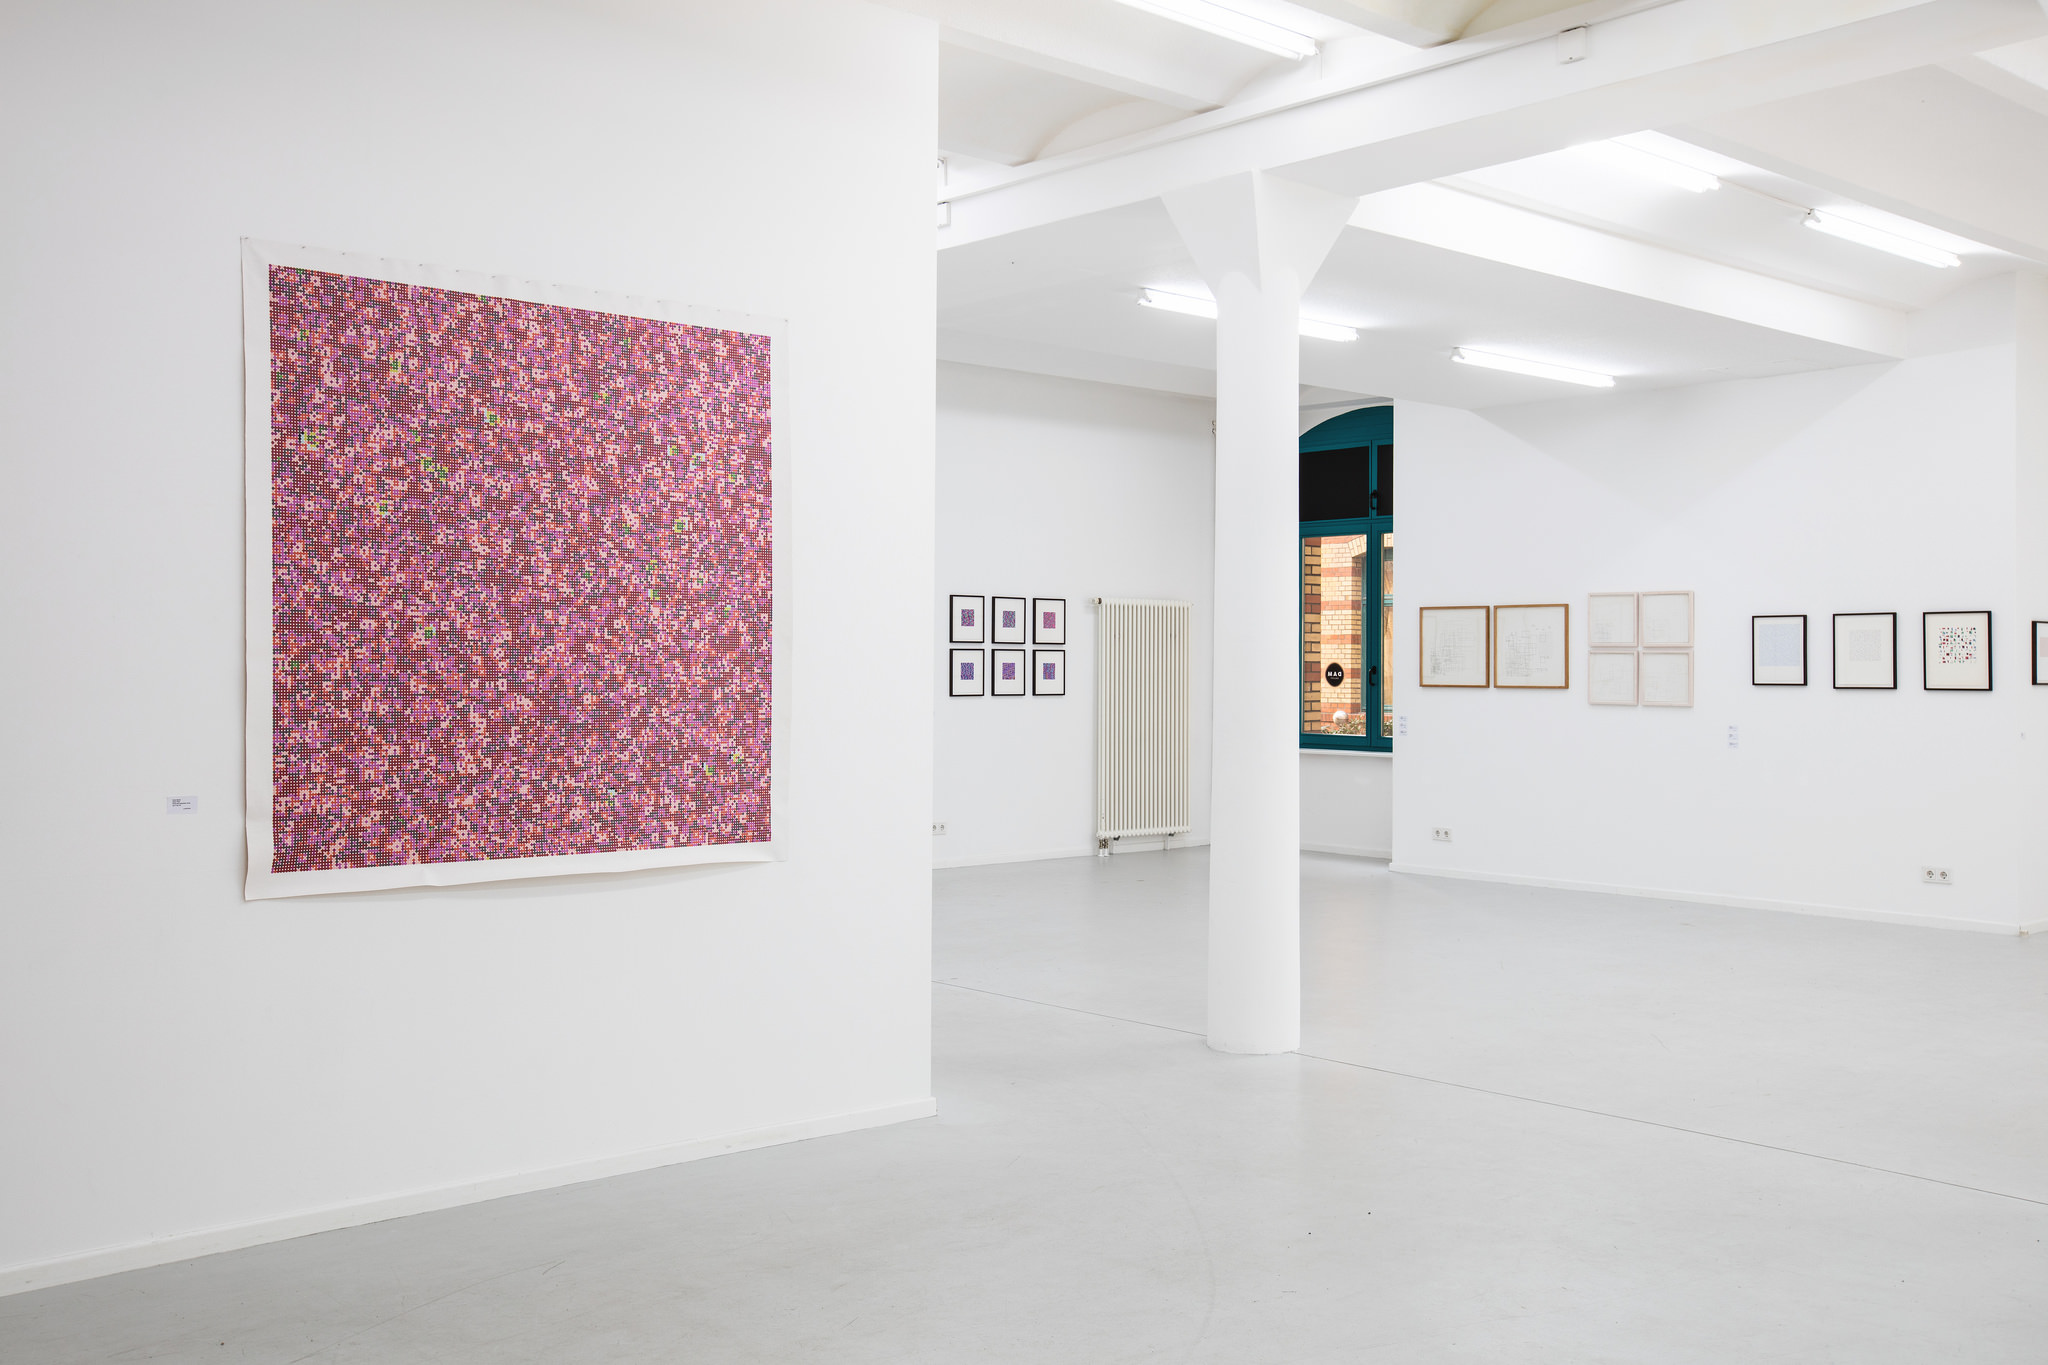 Peter Beyls, Mind the System, 2016, installation view